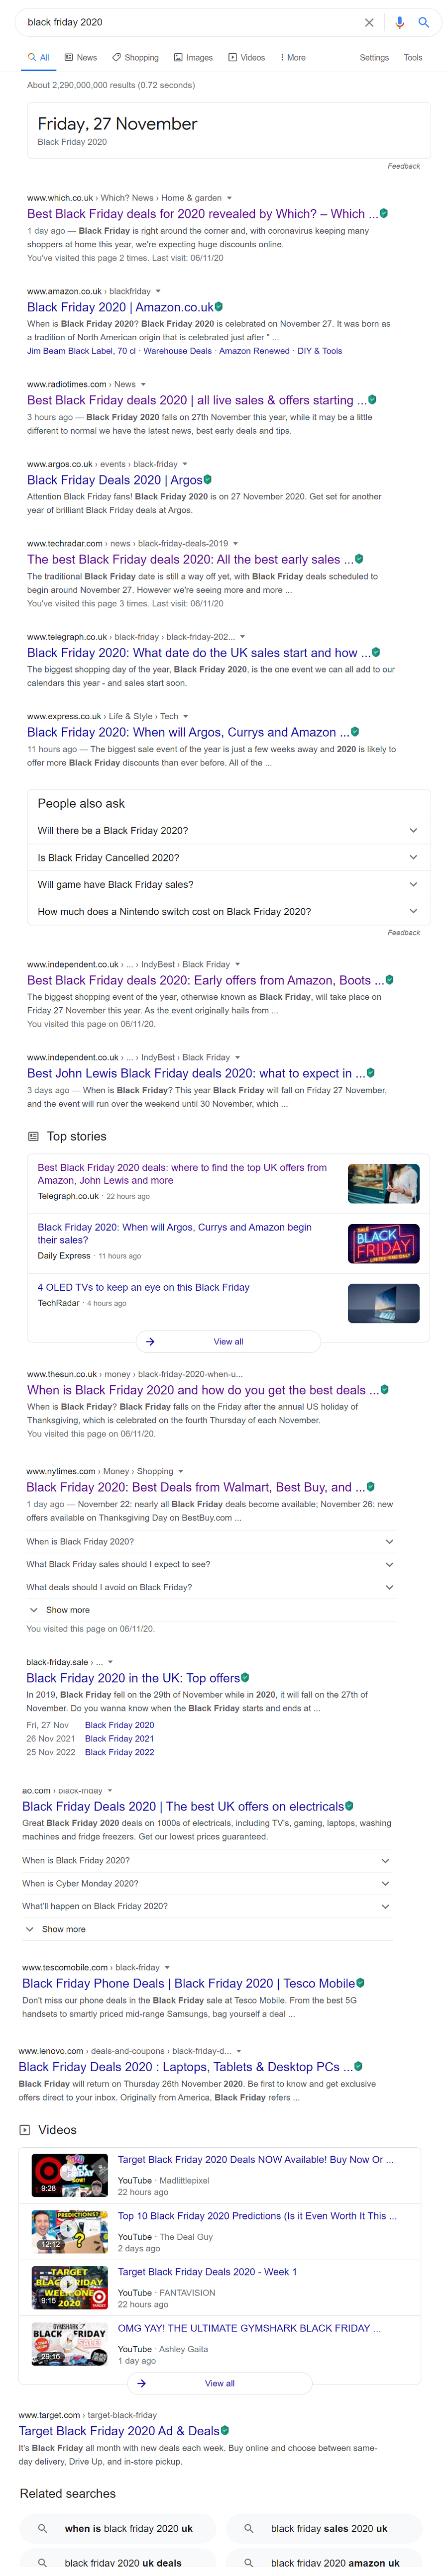 Black Friday Deals SERP Landscape